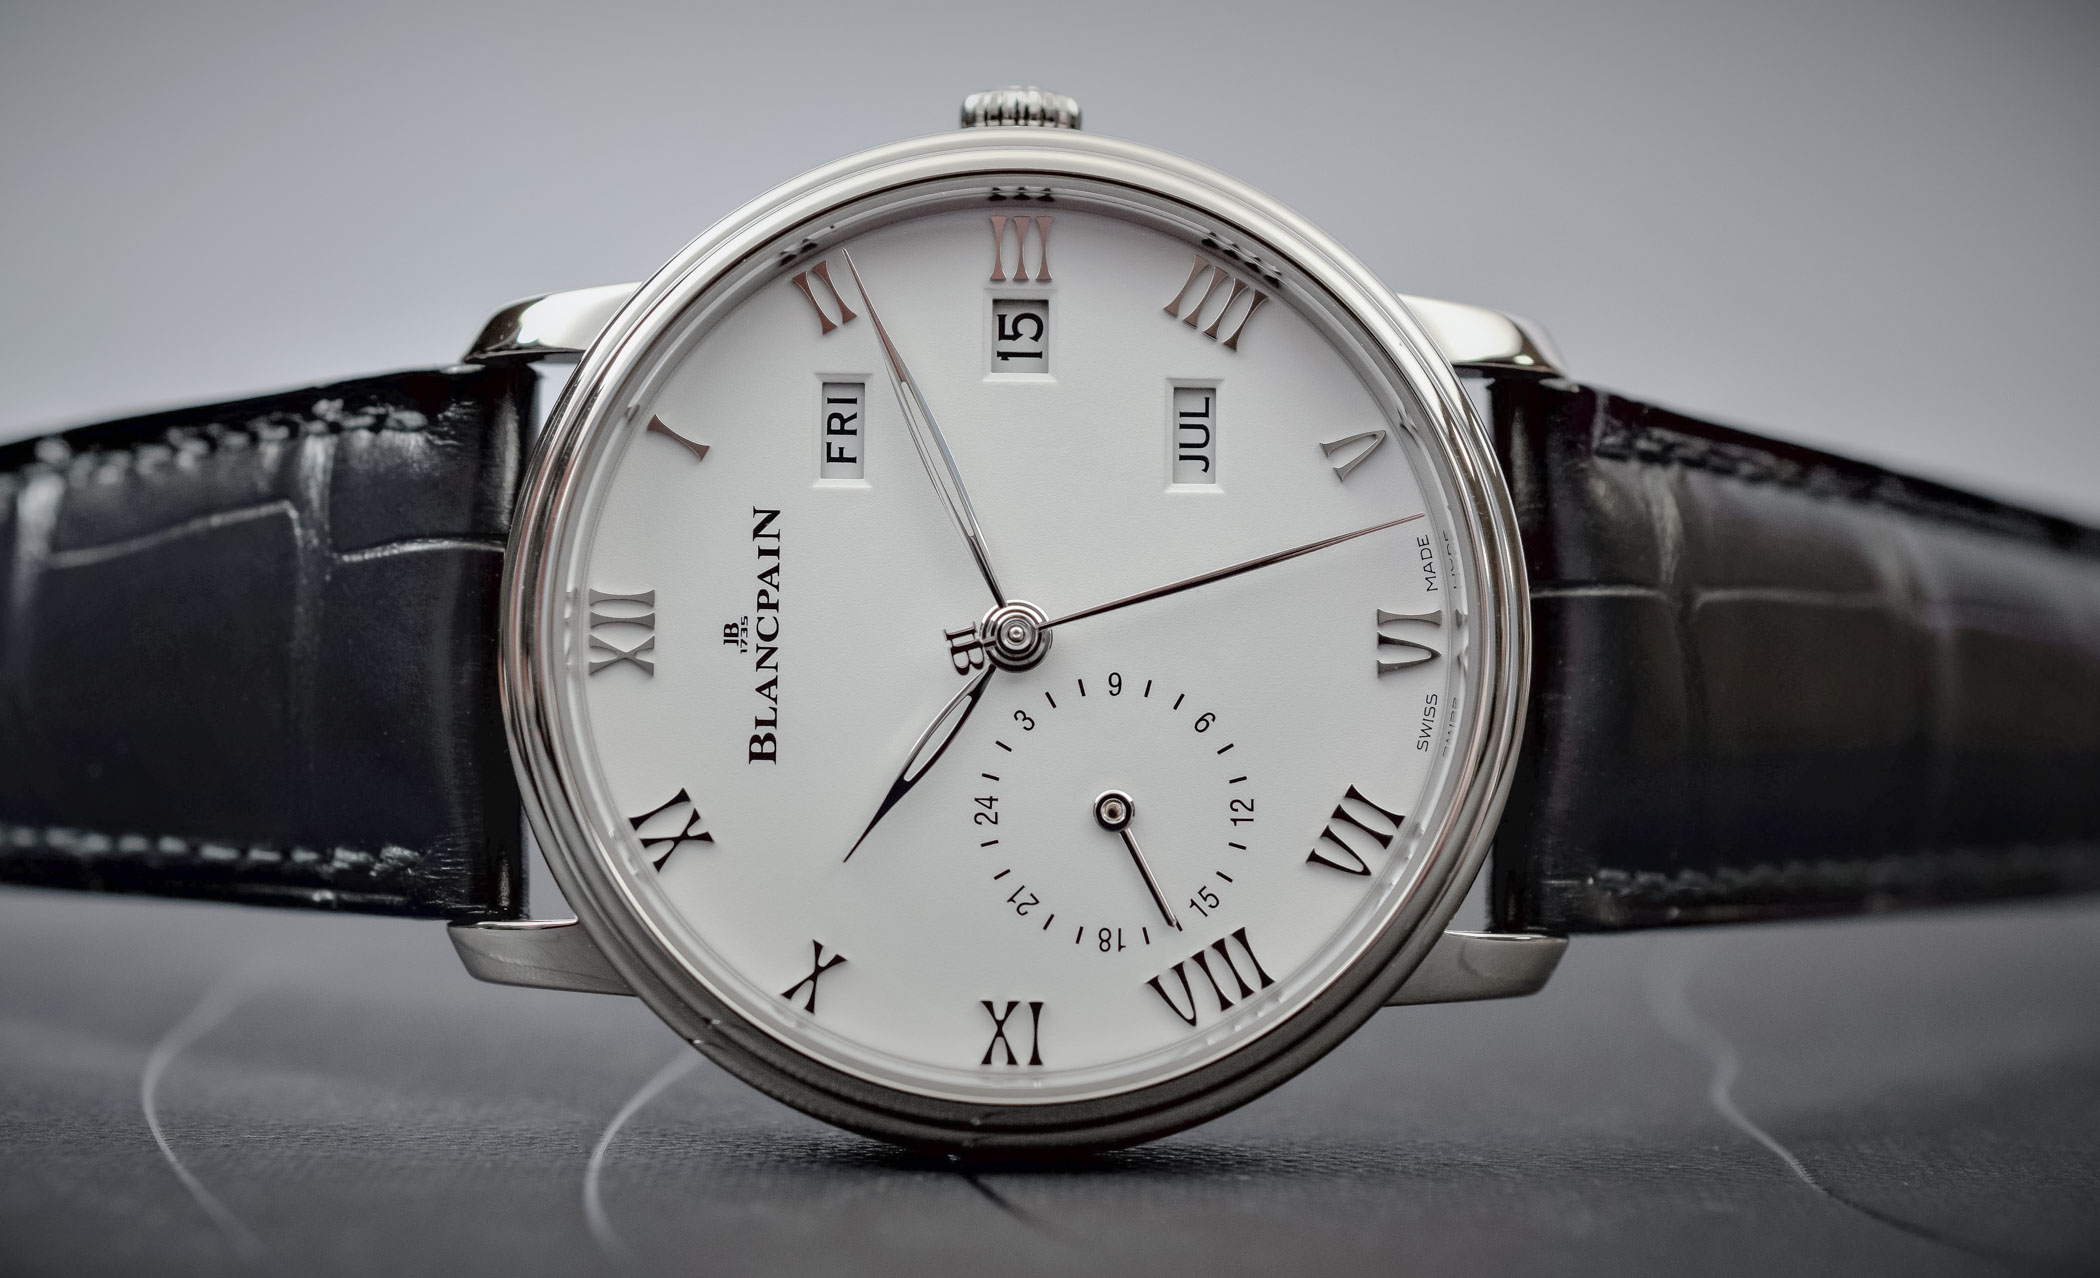 Buying Guide 2017 Annual Calendar Watches - Blancpain Villeret Annual Calendar